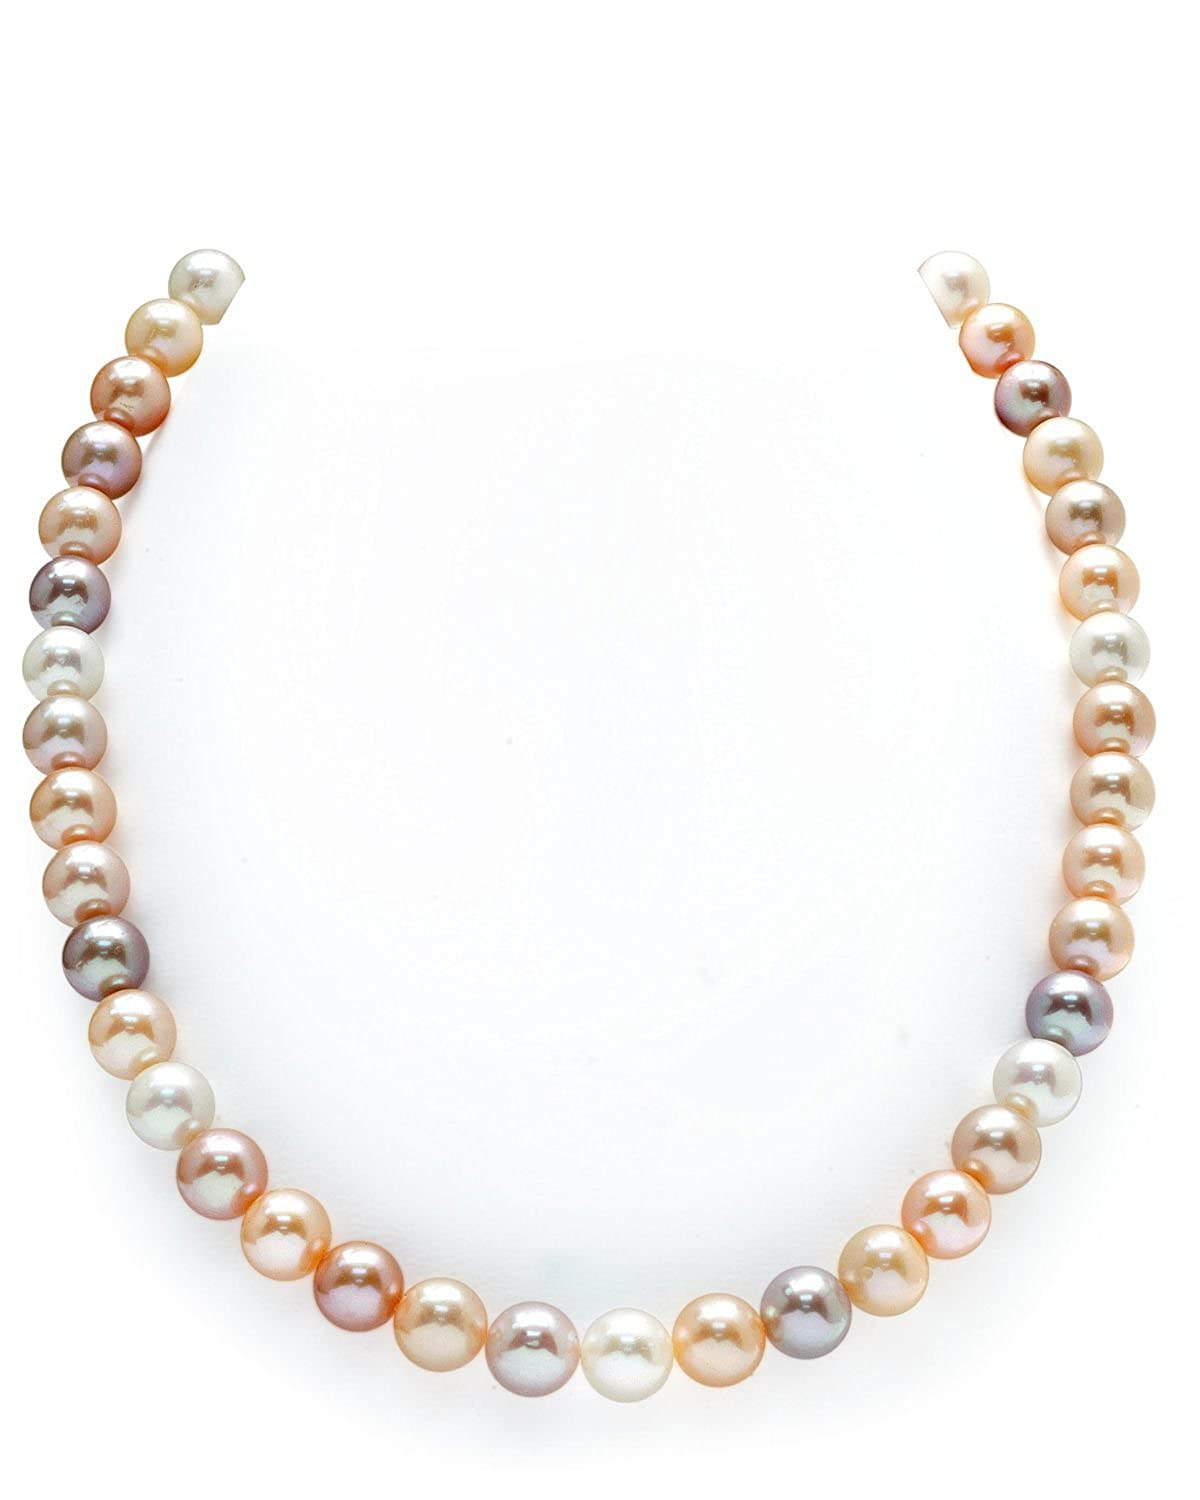 """14K Gold 9-10mm Freshwater Multicolor Cultured Pearl Necklace - AAAA Quality, 20"""" Matinee Length"""